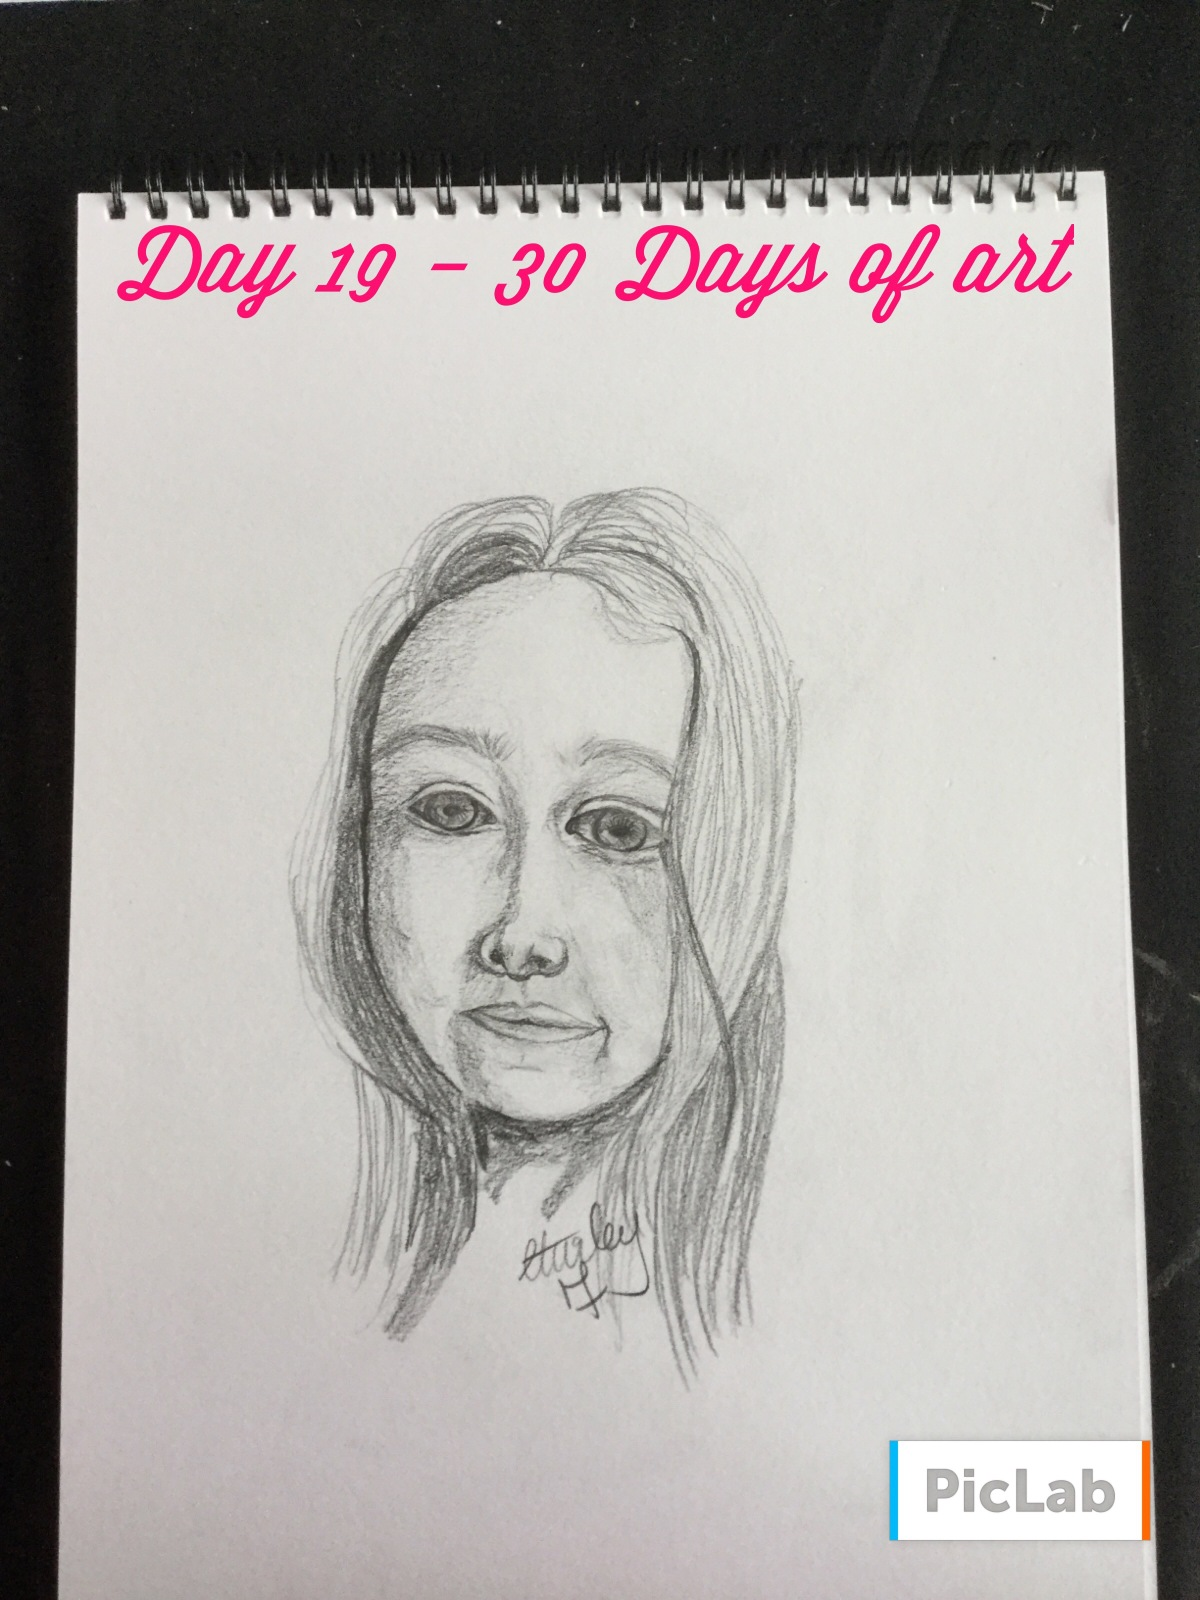 Day 19 – 30 Days of Art